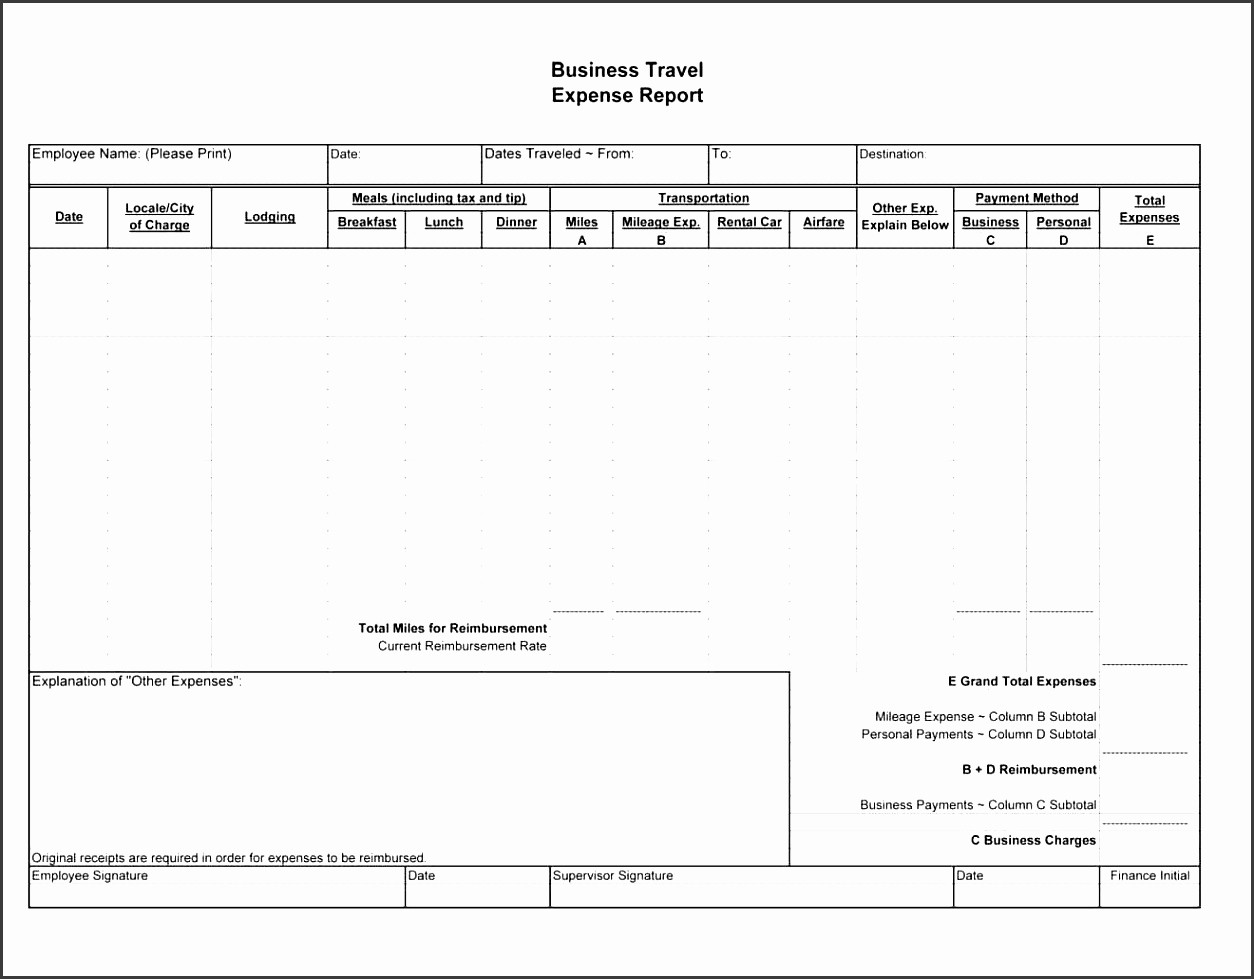 Business Travel Expense Report Template New 5 Business Expense Report Template Sampletemplatess